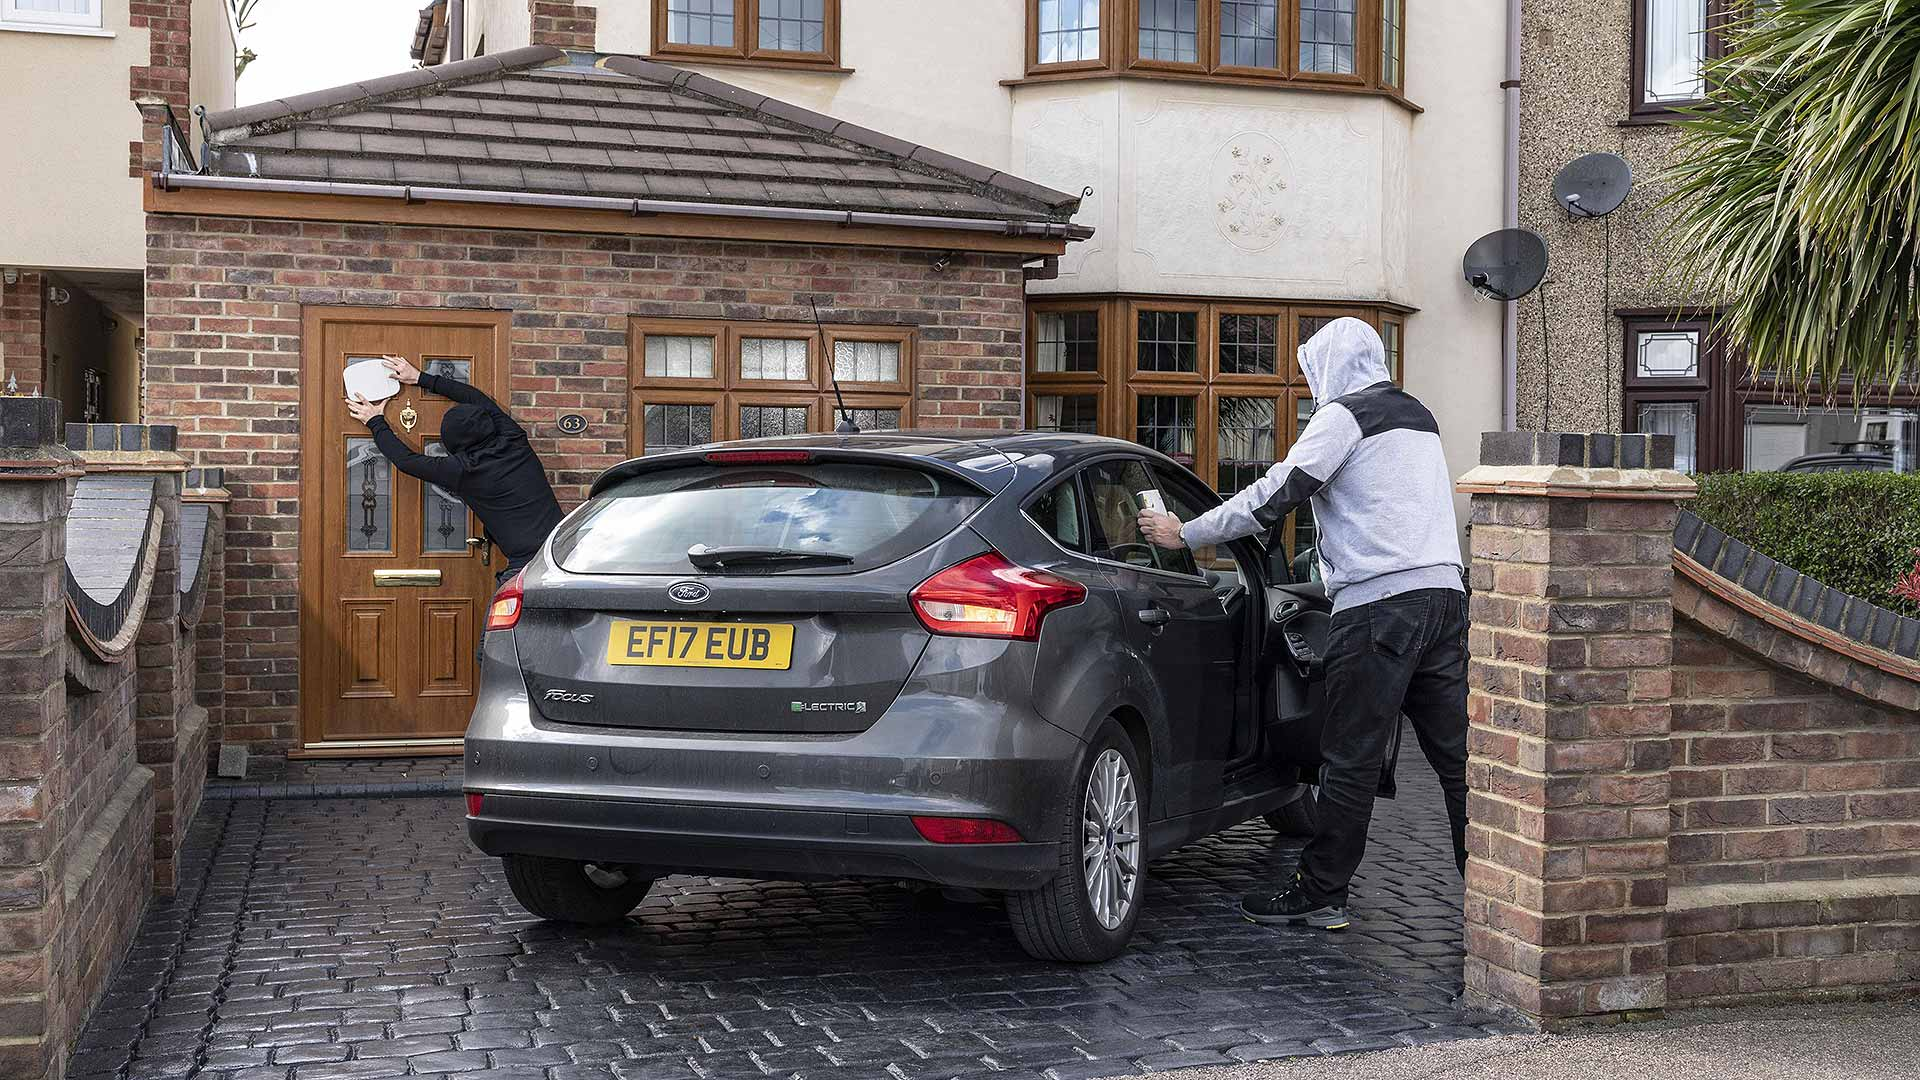 Ford Focus keyless theft relay attack demonstration